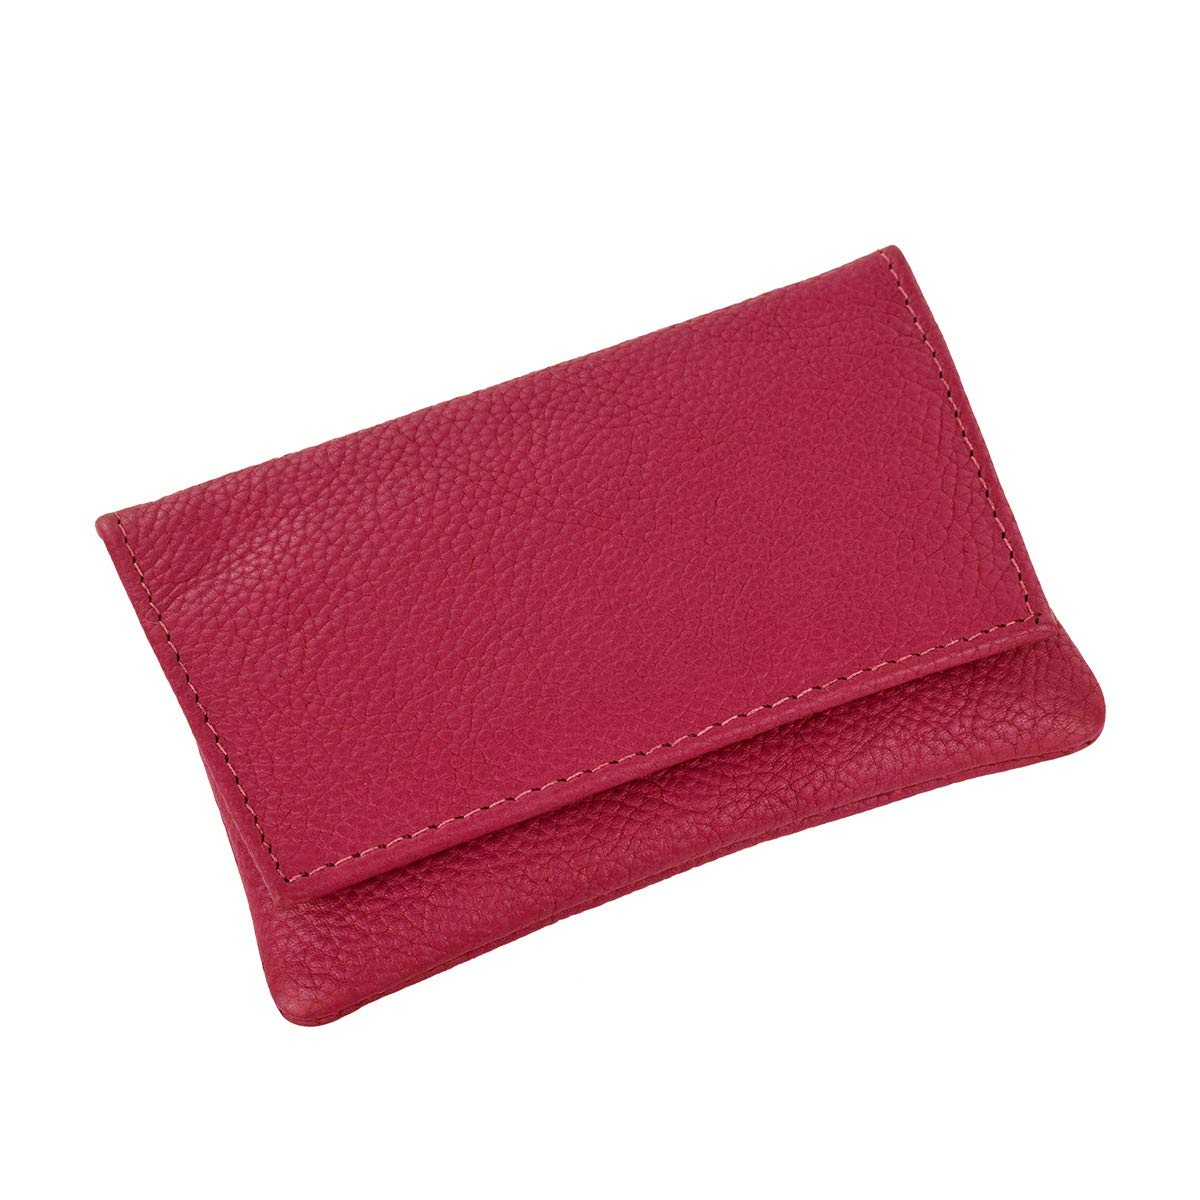 GTR-Prestige Giftware Smoking Accessories P35539OR GBD Mini Orange Leather Patterned Roll Your Own Tobacco Pouch